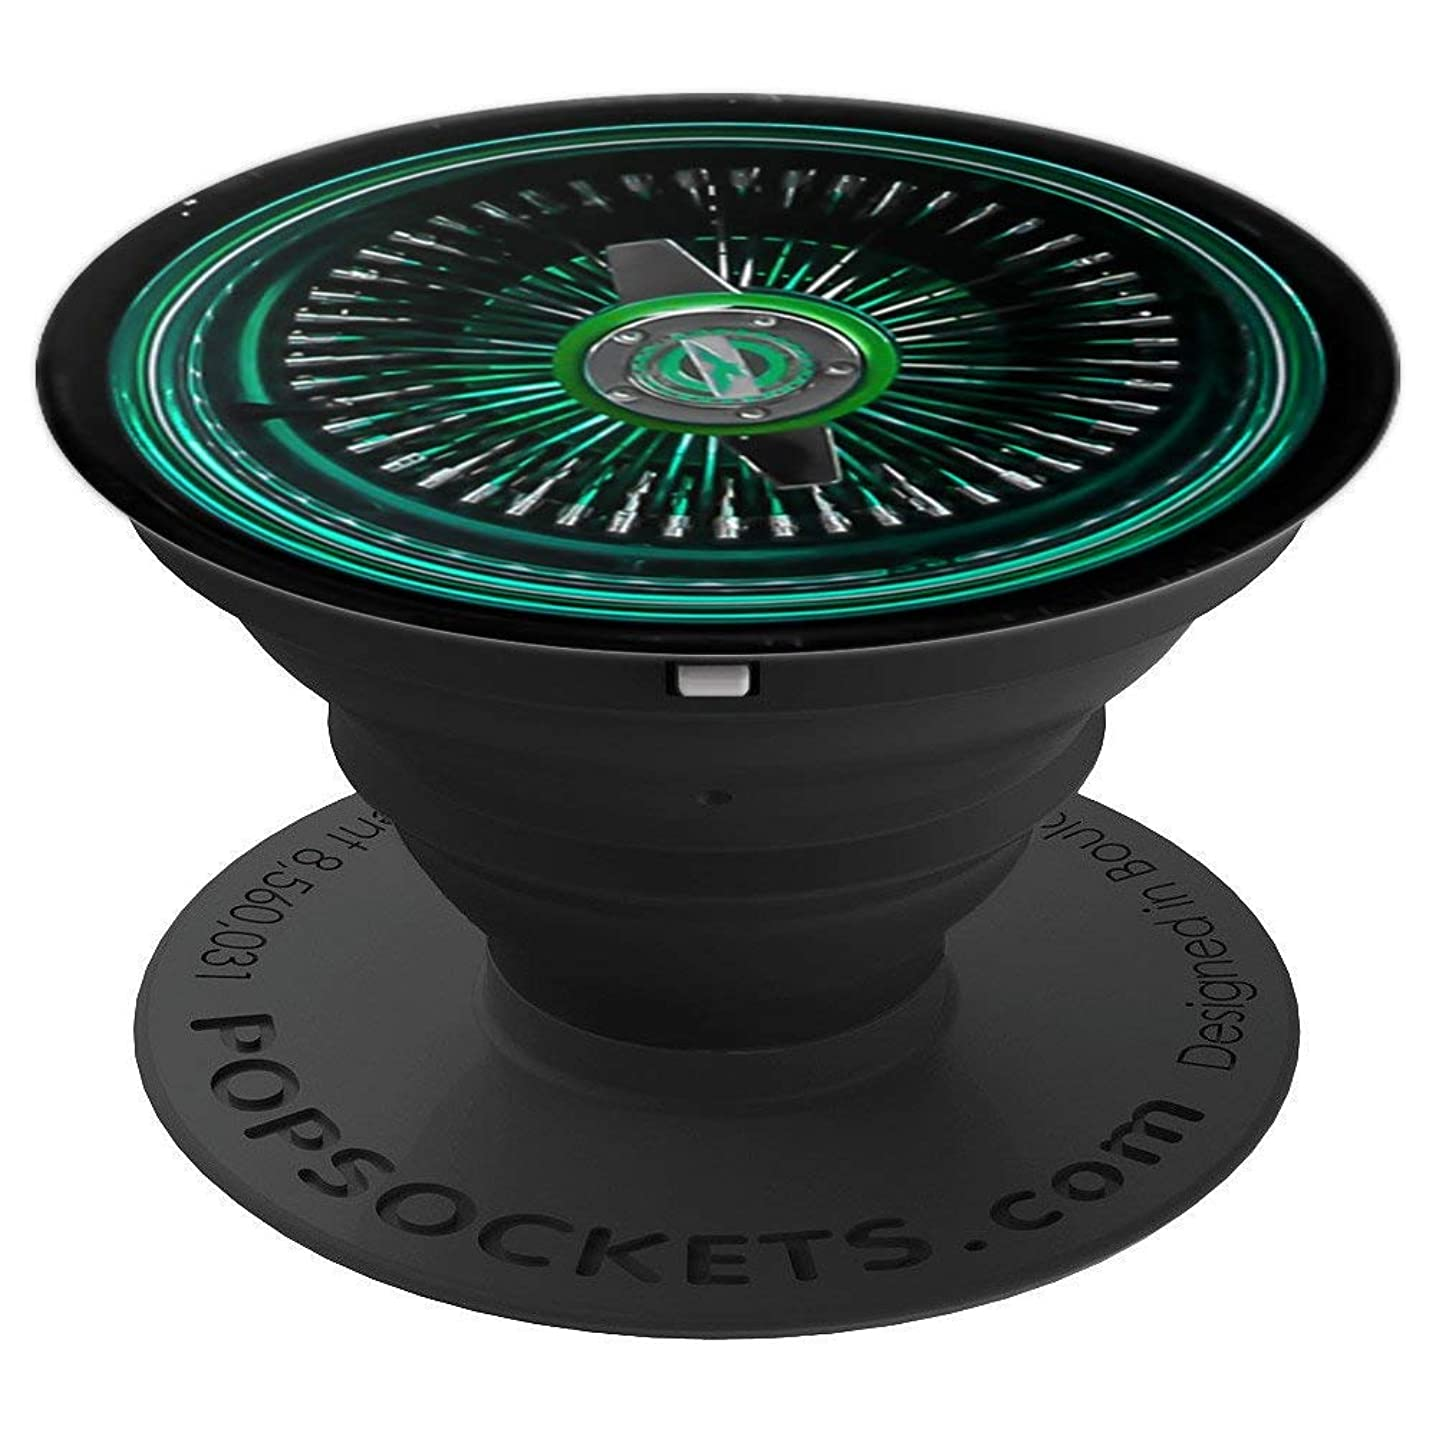 Lowrider Wire Wheel Phone Grip Green spoke - PopSockets Grip and Stand for Phones and Tablets